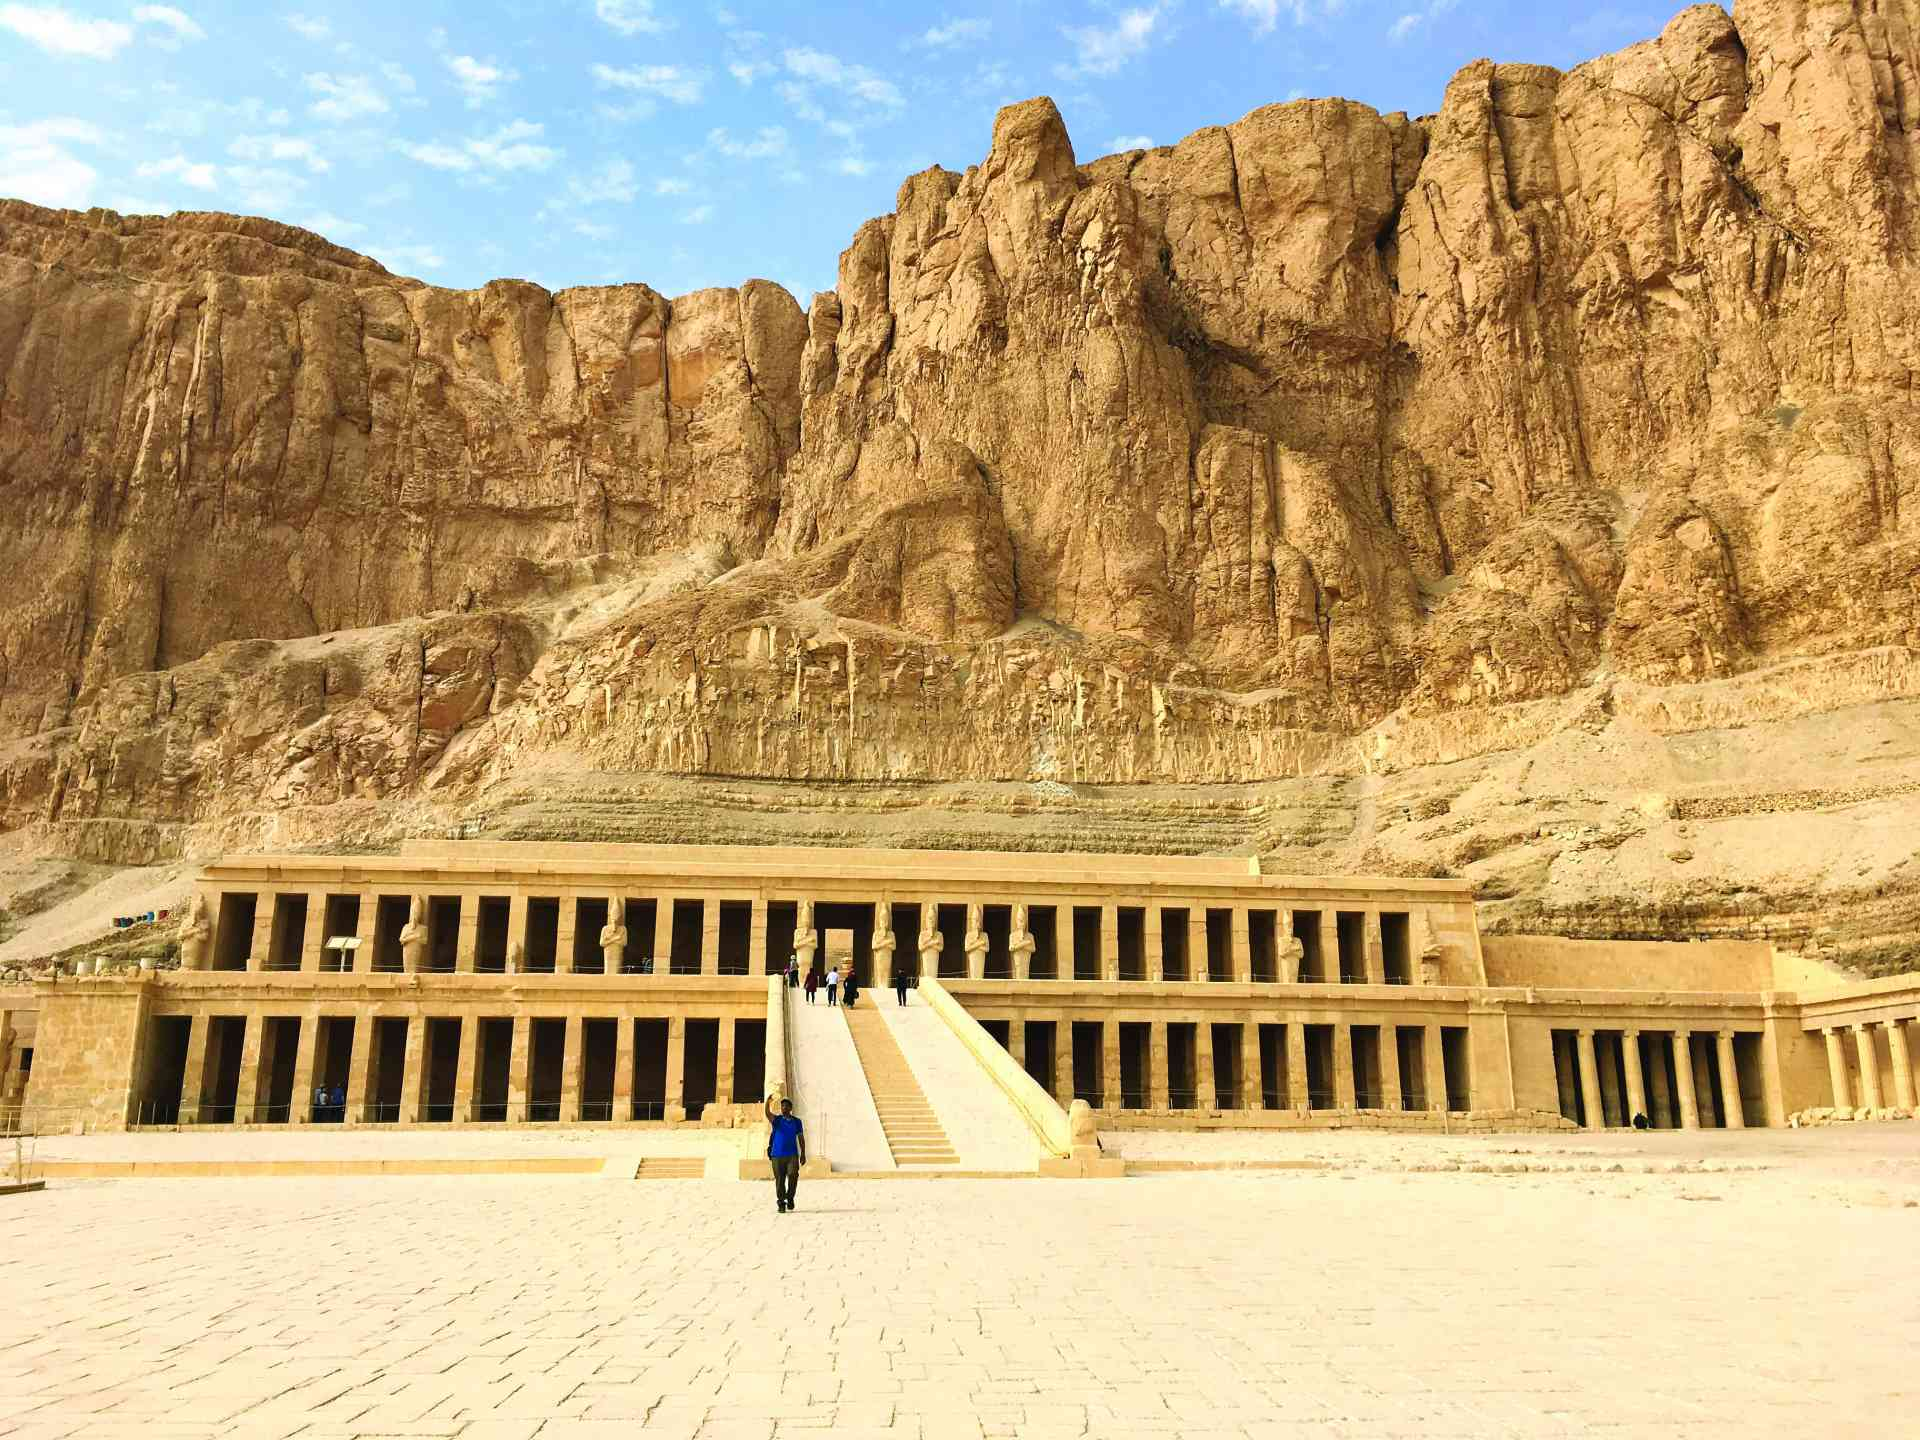 Queen Hatshepsut Temple, Luxor, Egypt by Erin Clifford